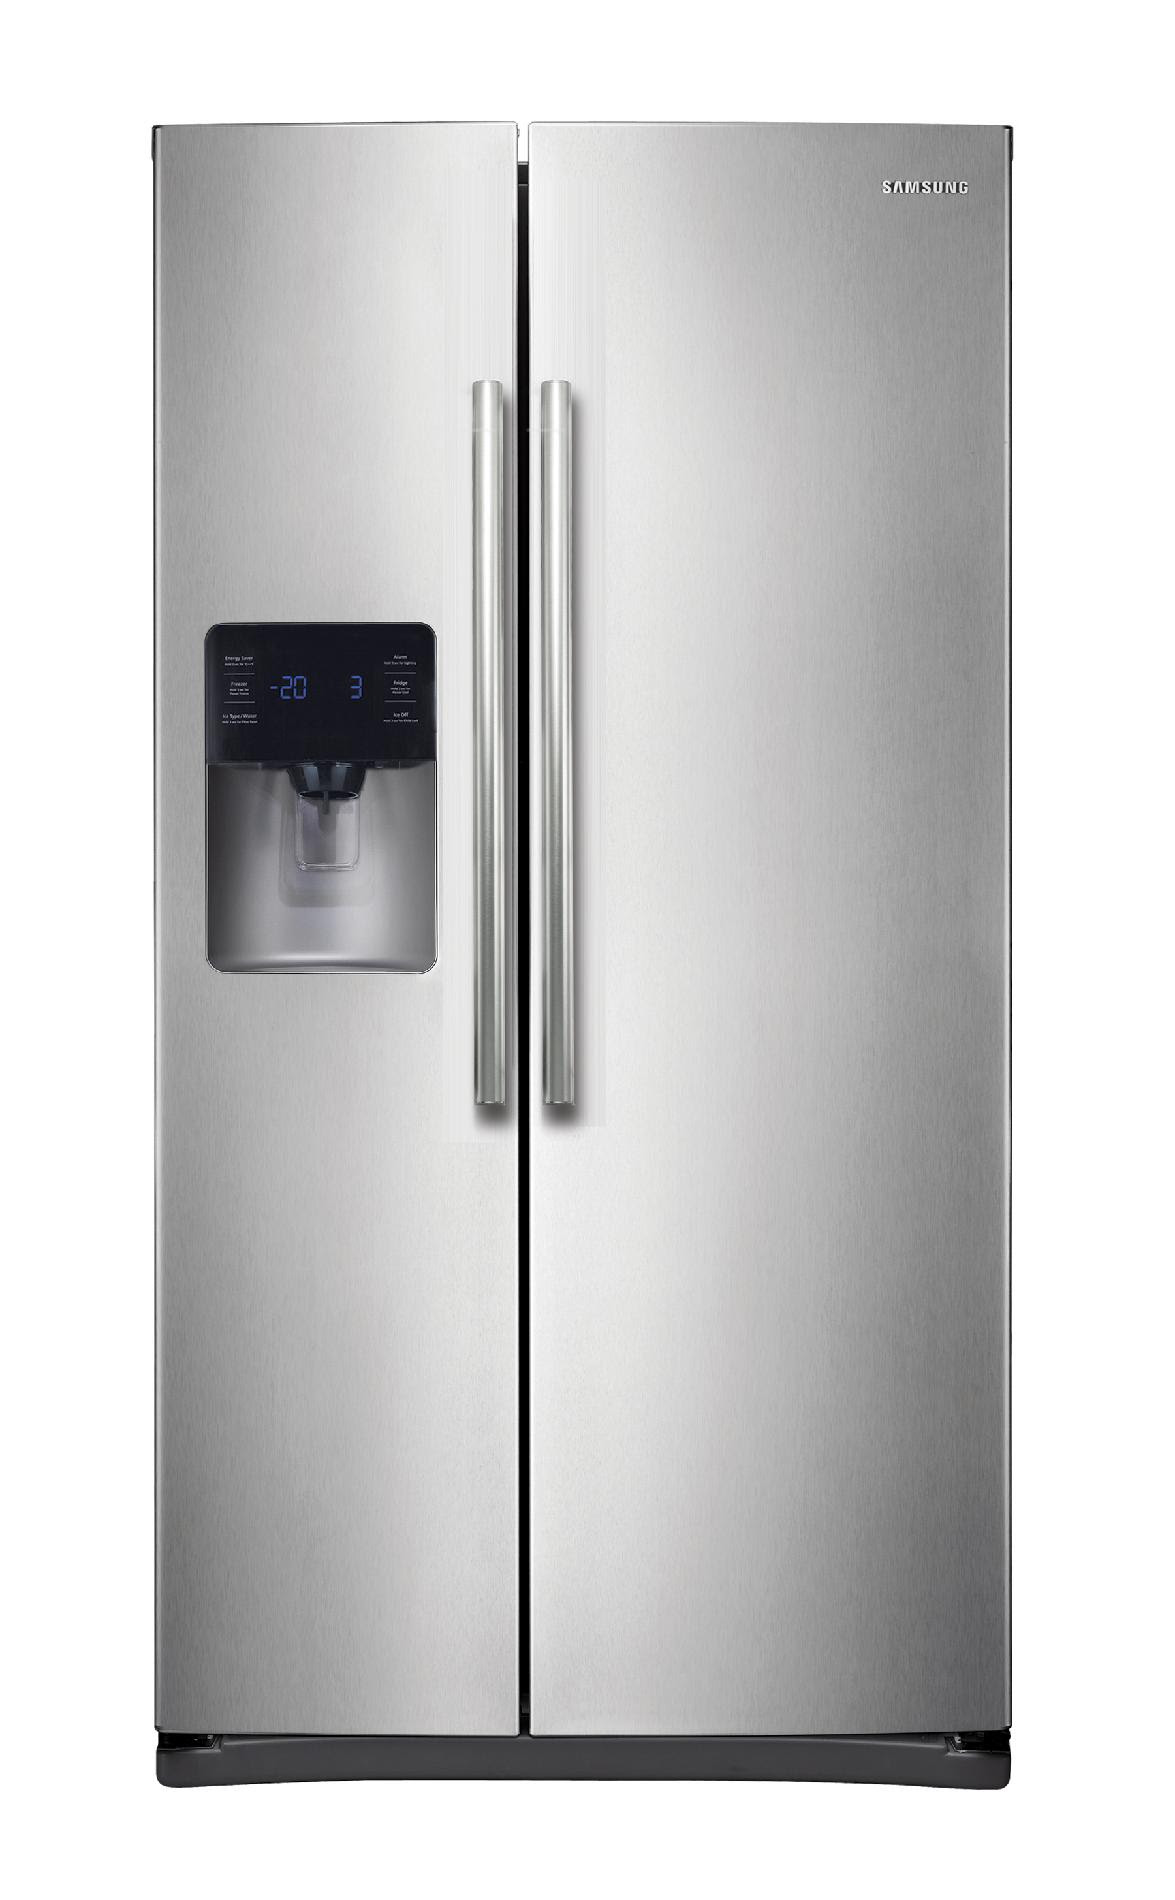 Samsung RS25H5111SR 24 5 cu ft Side by Side Refrigerator